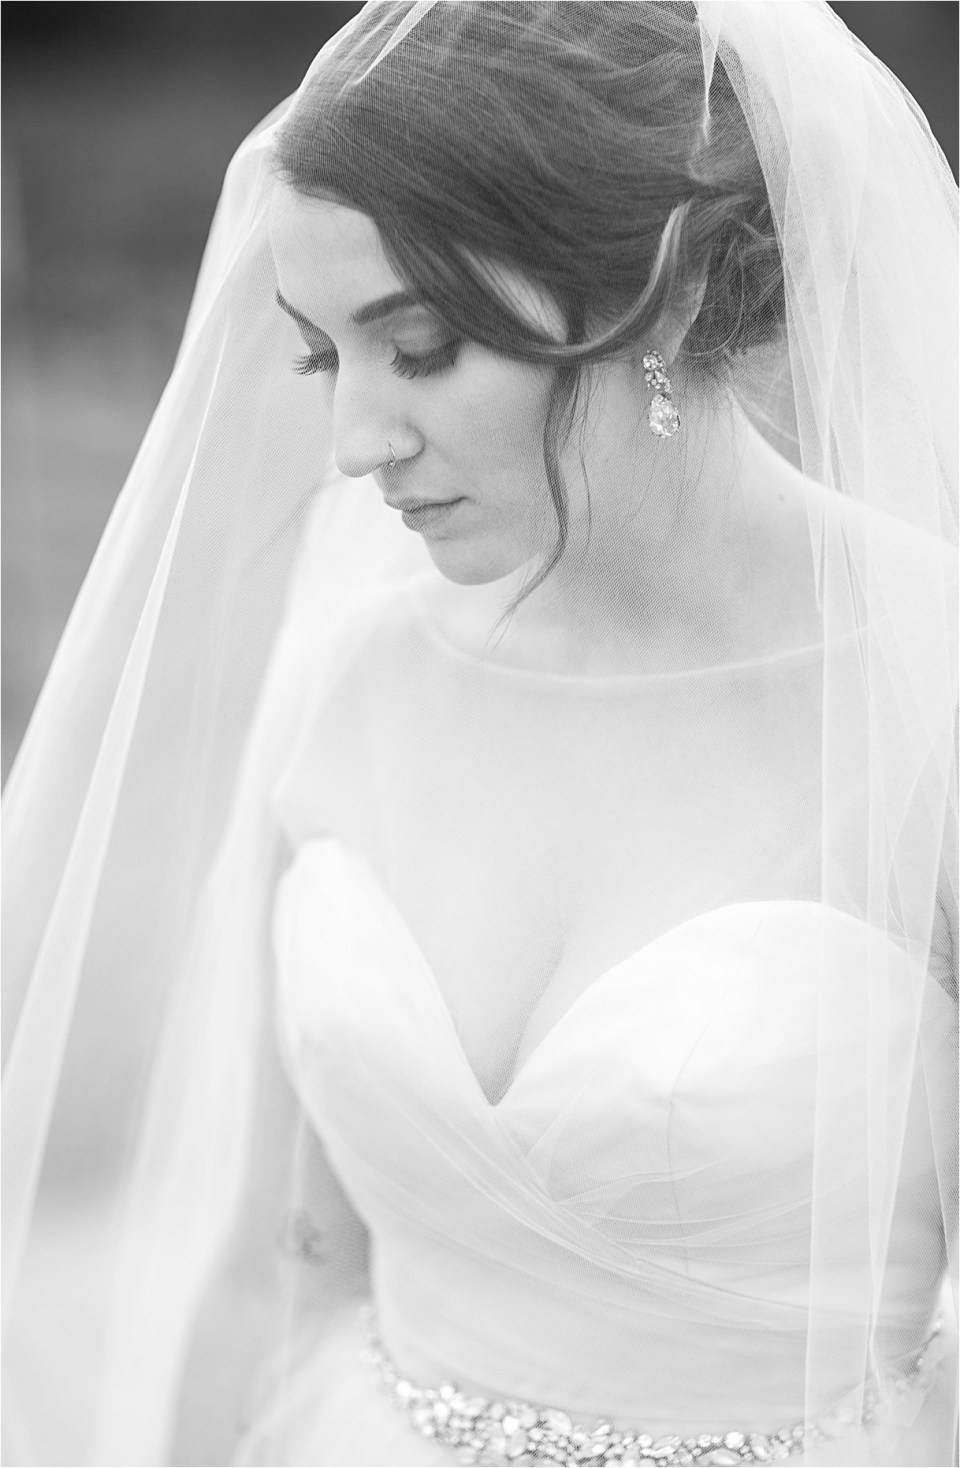 Black and white photo of Bride in a veil from Epiphany Bridal Boutique.